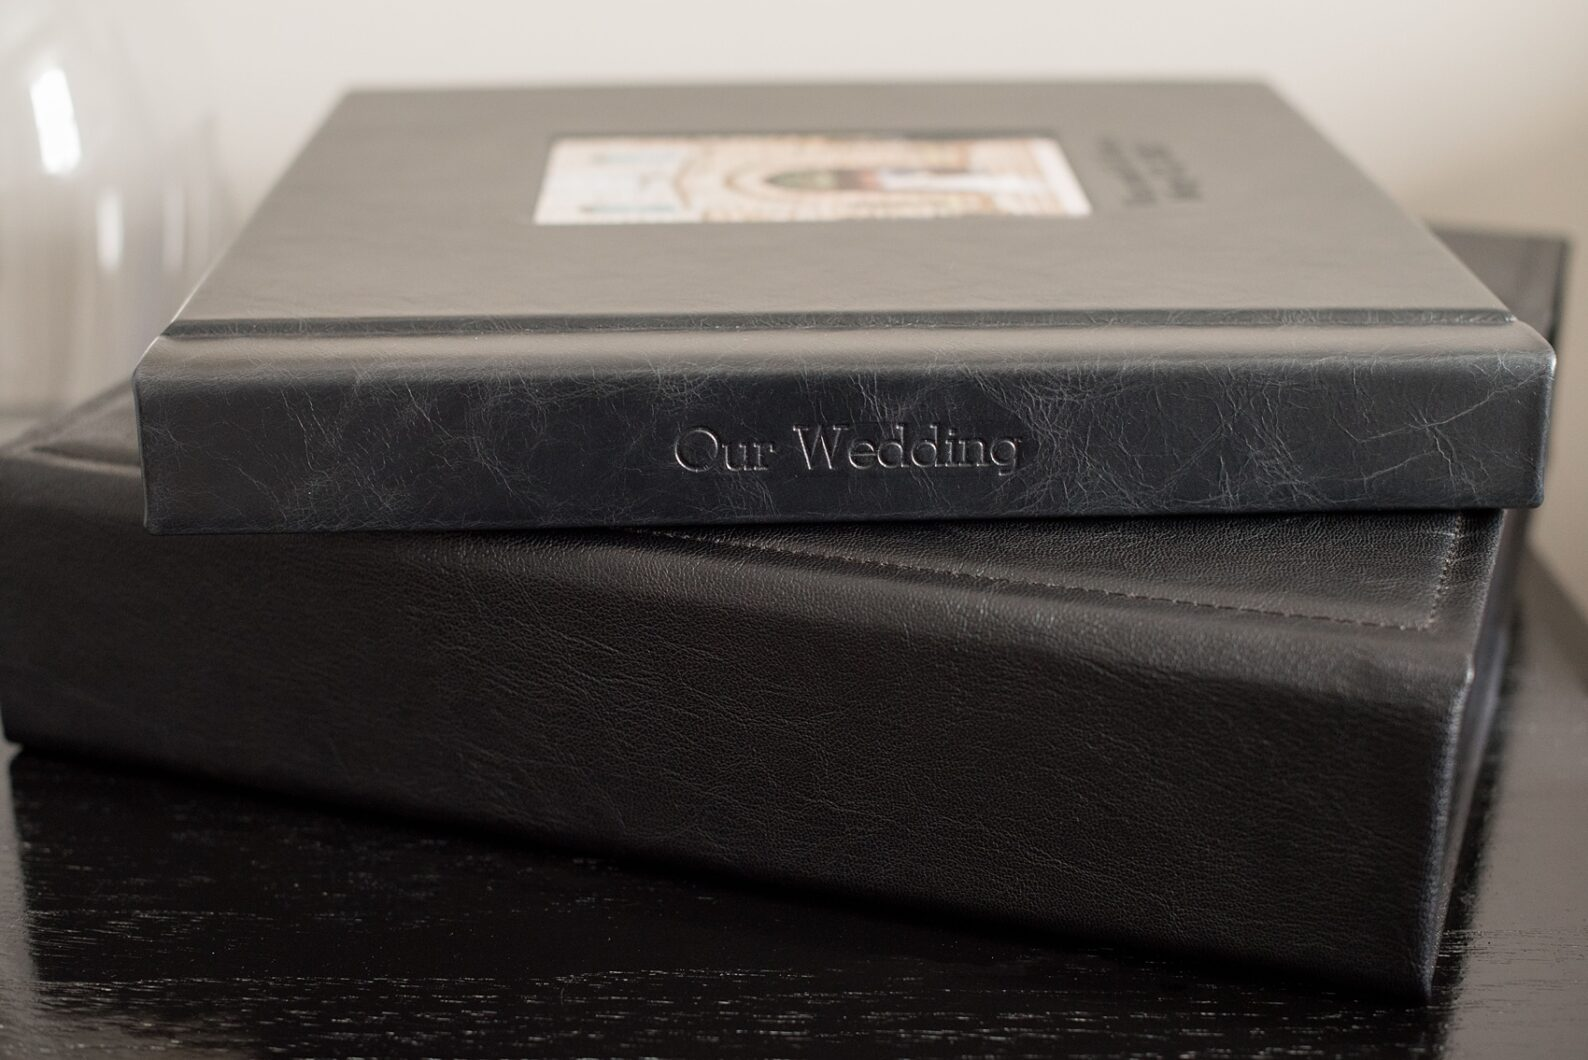 Images of a black calf leather fine art wedding album from Mikkel Paige Photography, a Raleigh, NC photographer. Photo shows spine debossing text.